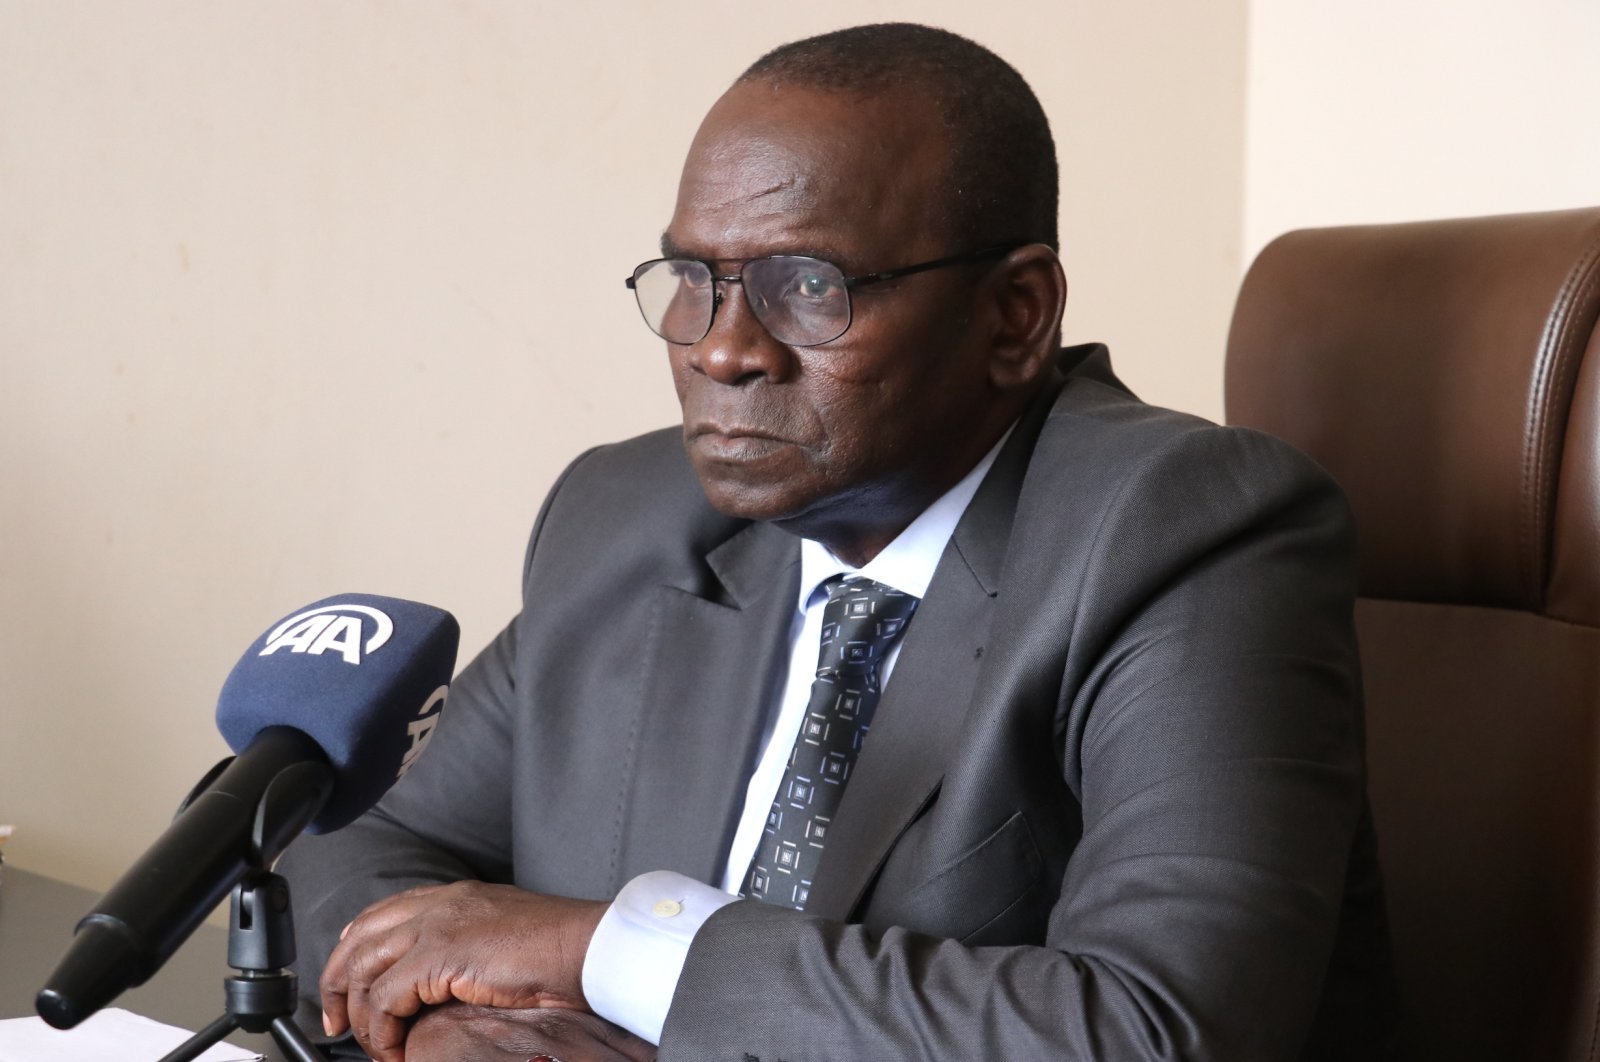 Senegal can benefit from Turkey's experience: Senegalese official